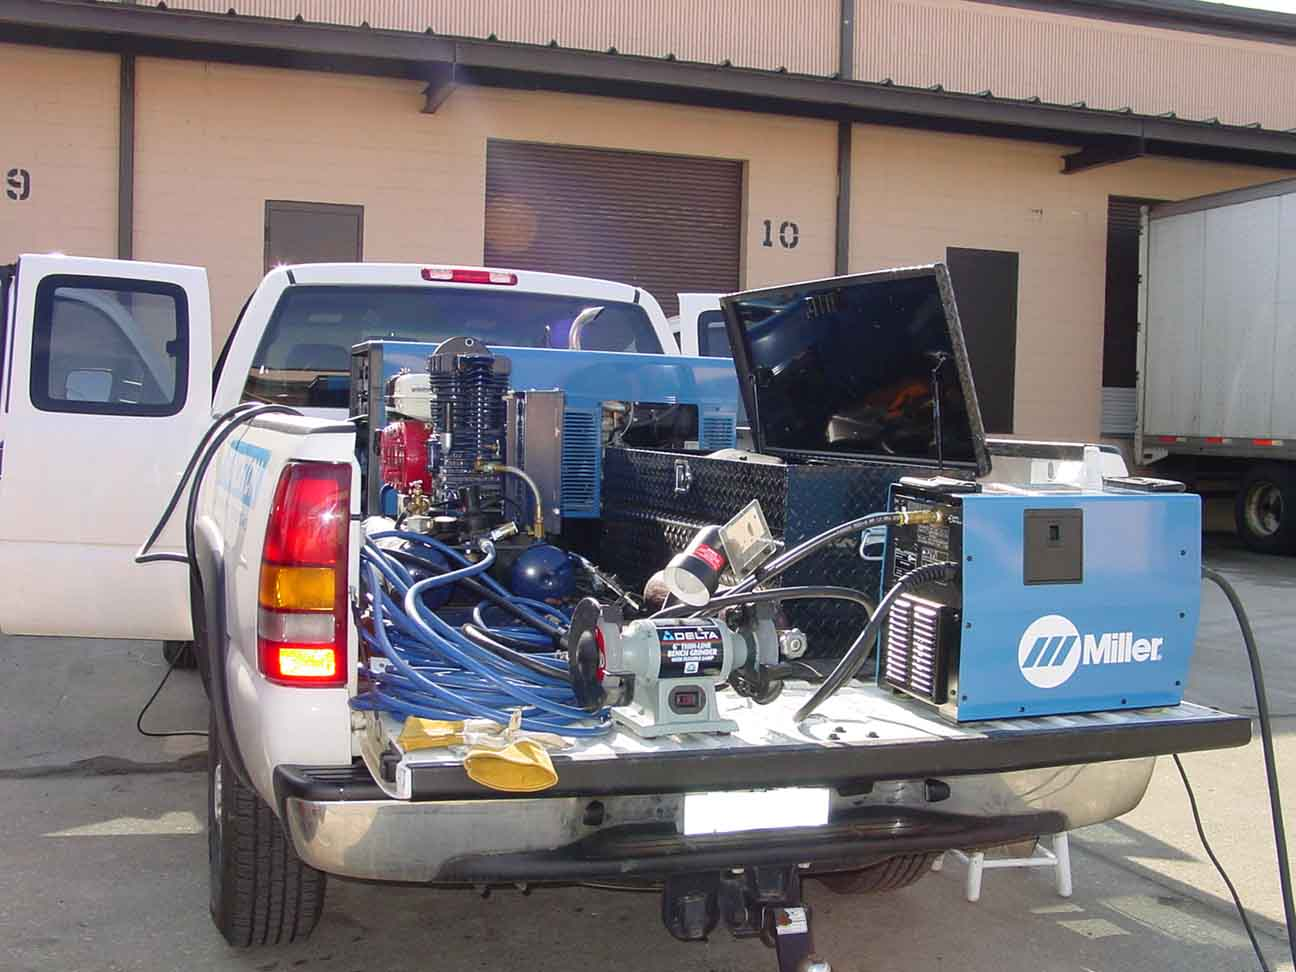 For those with a mobile setup - Miller Welding Discussion Forums